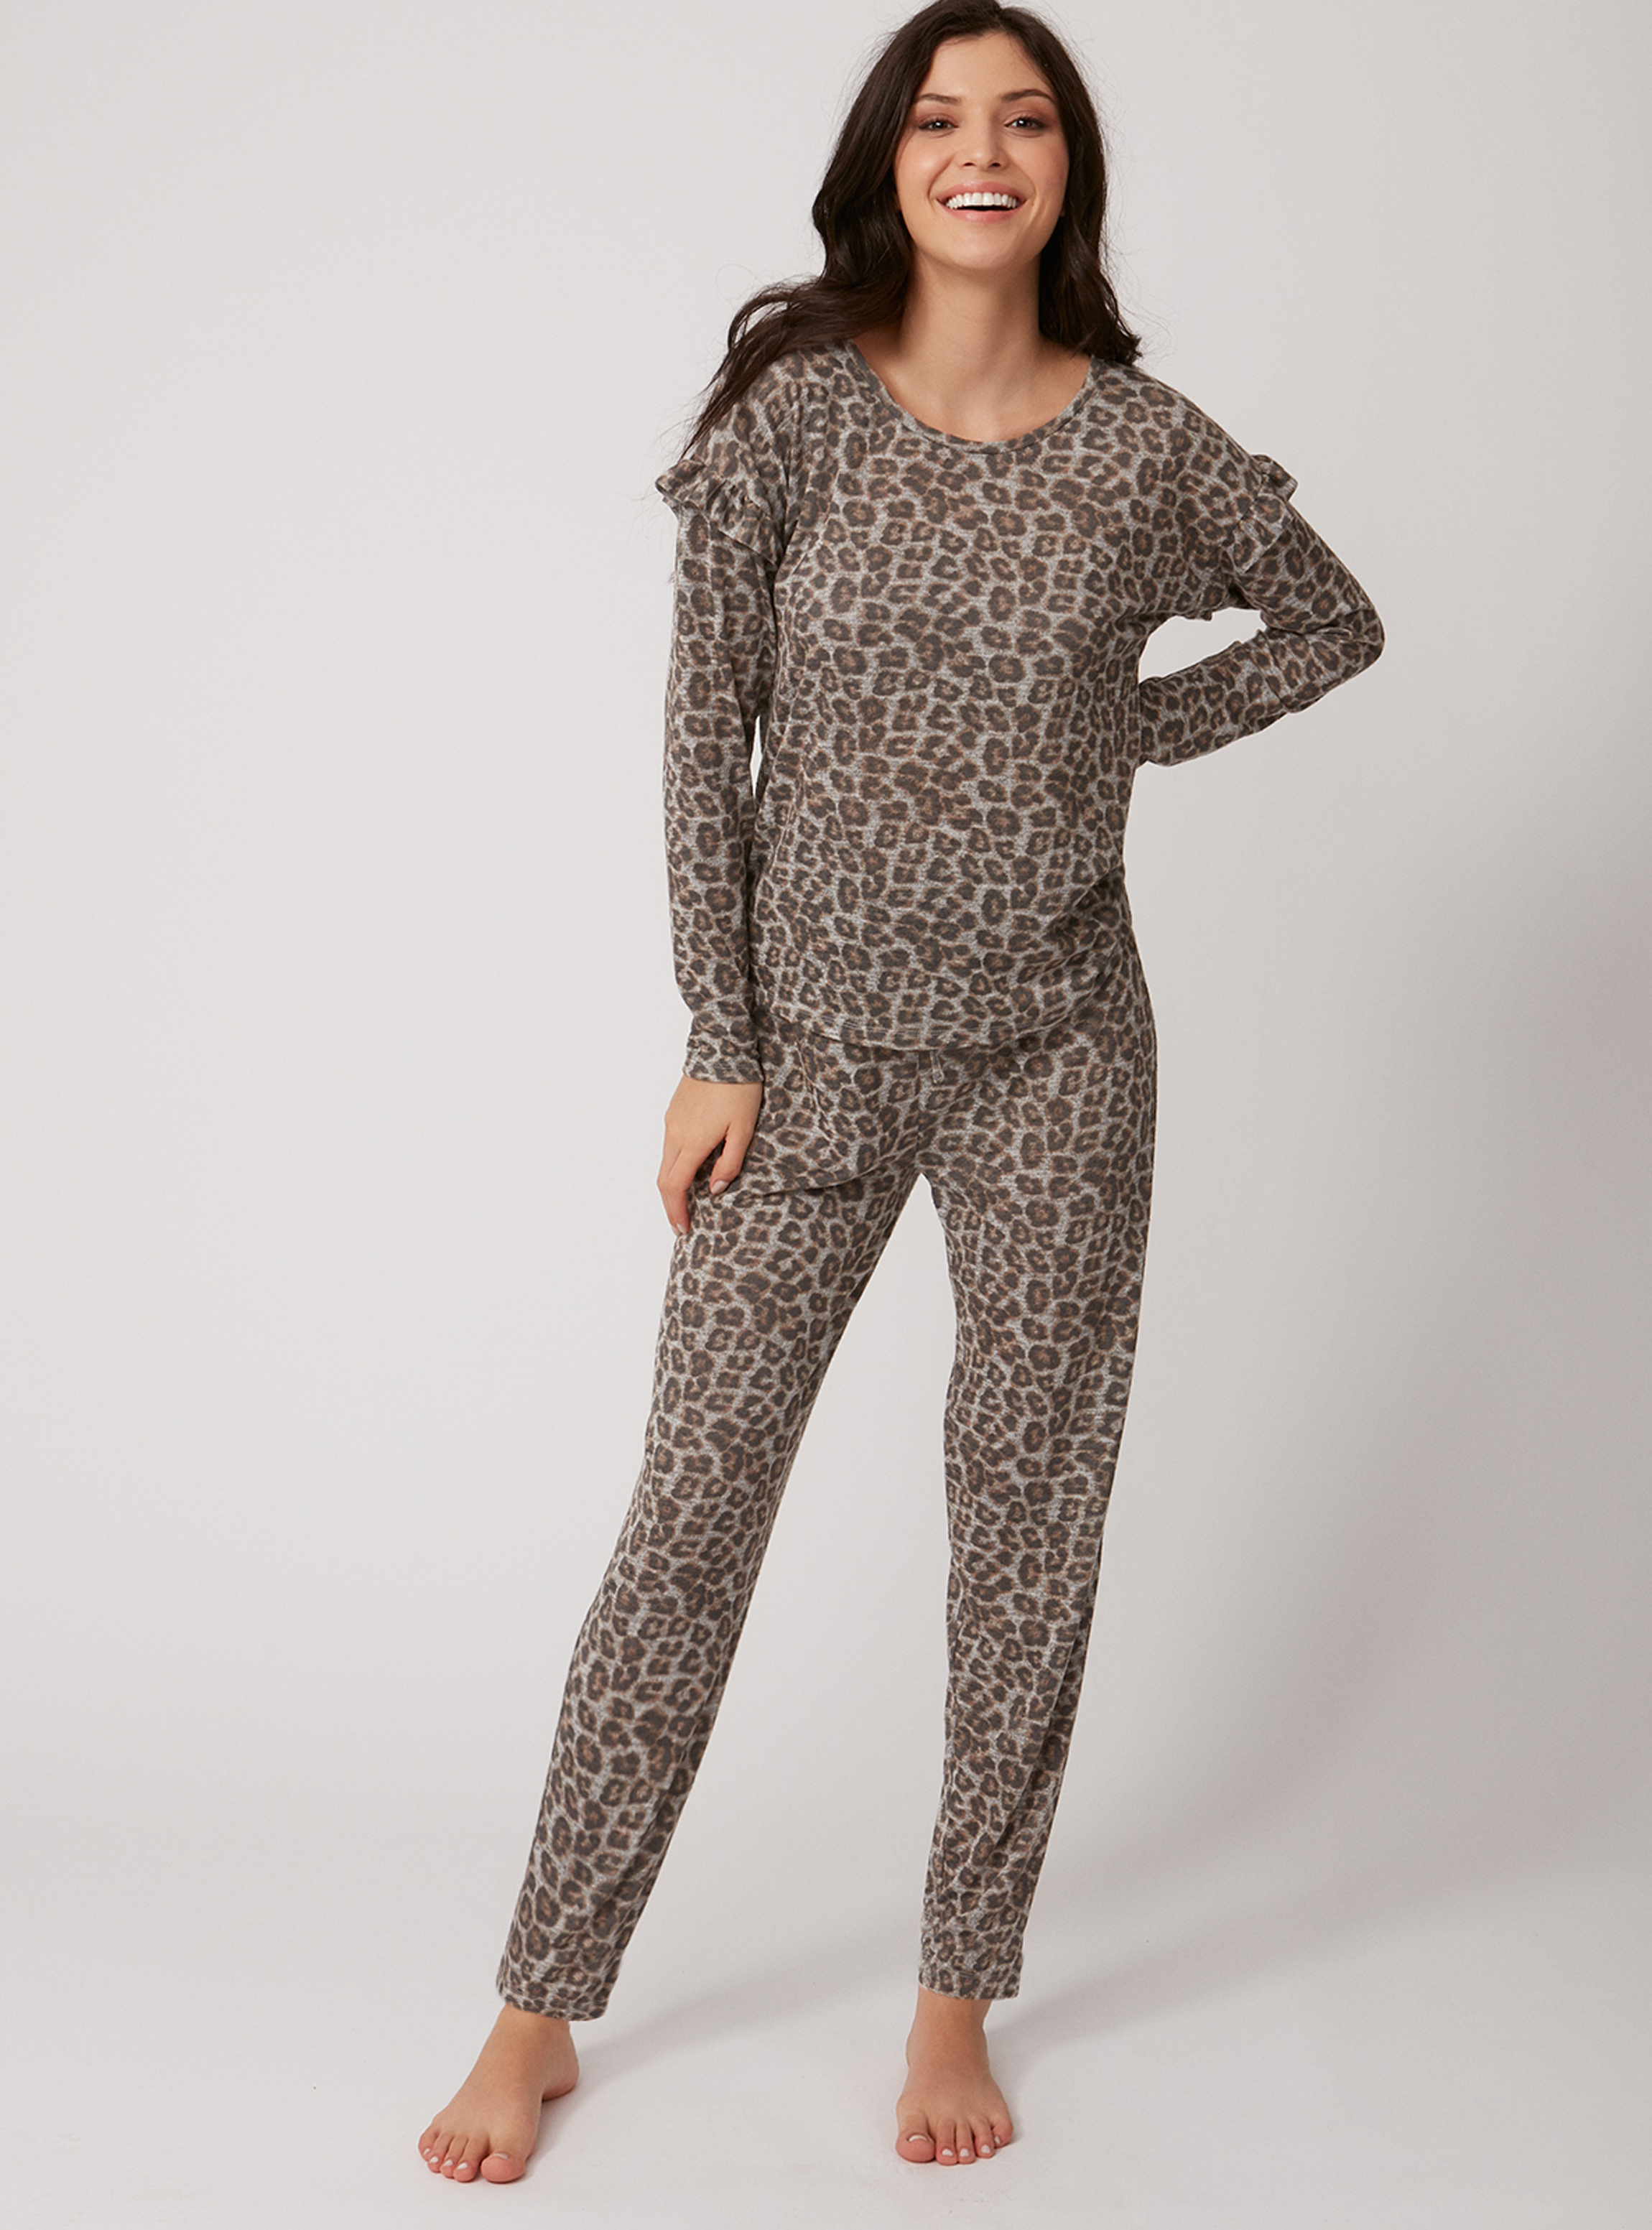 model wearing Boux Avenue Leopard Twosie